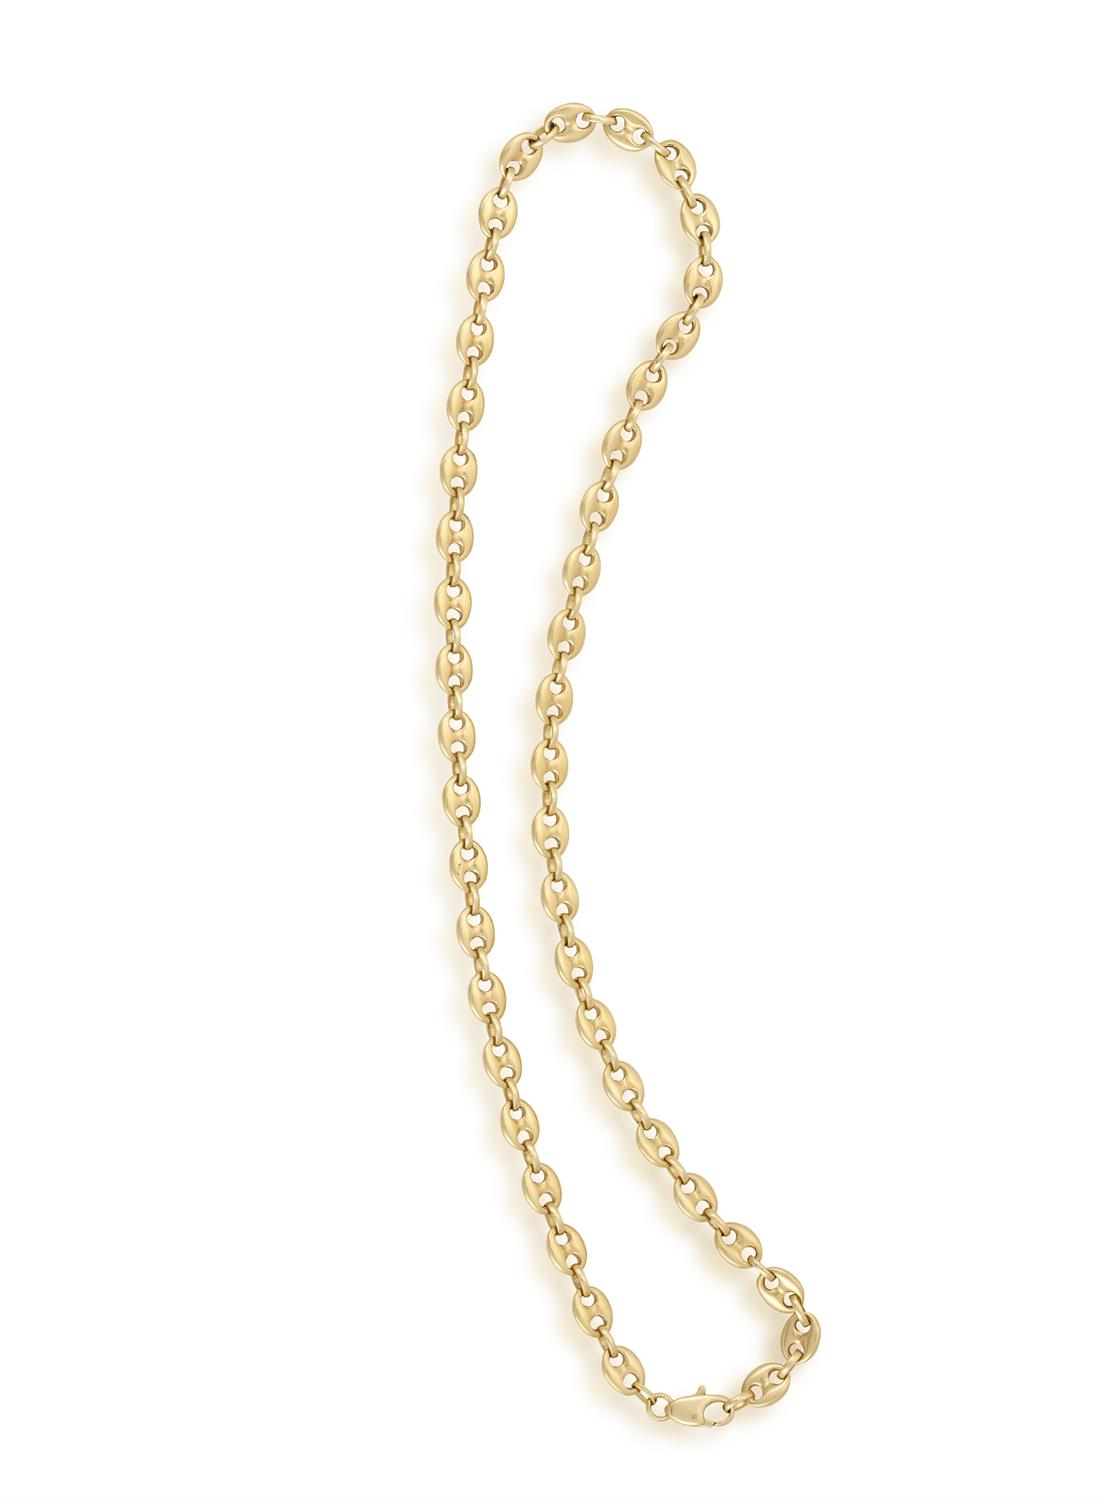 A GOLD NECKLACE, composed of Gucci links, in 18K gold, length 51.5cm